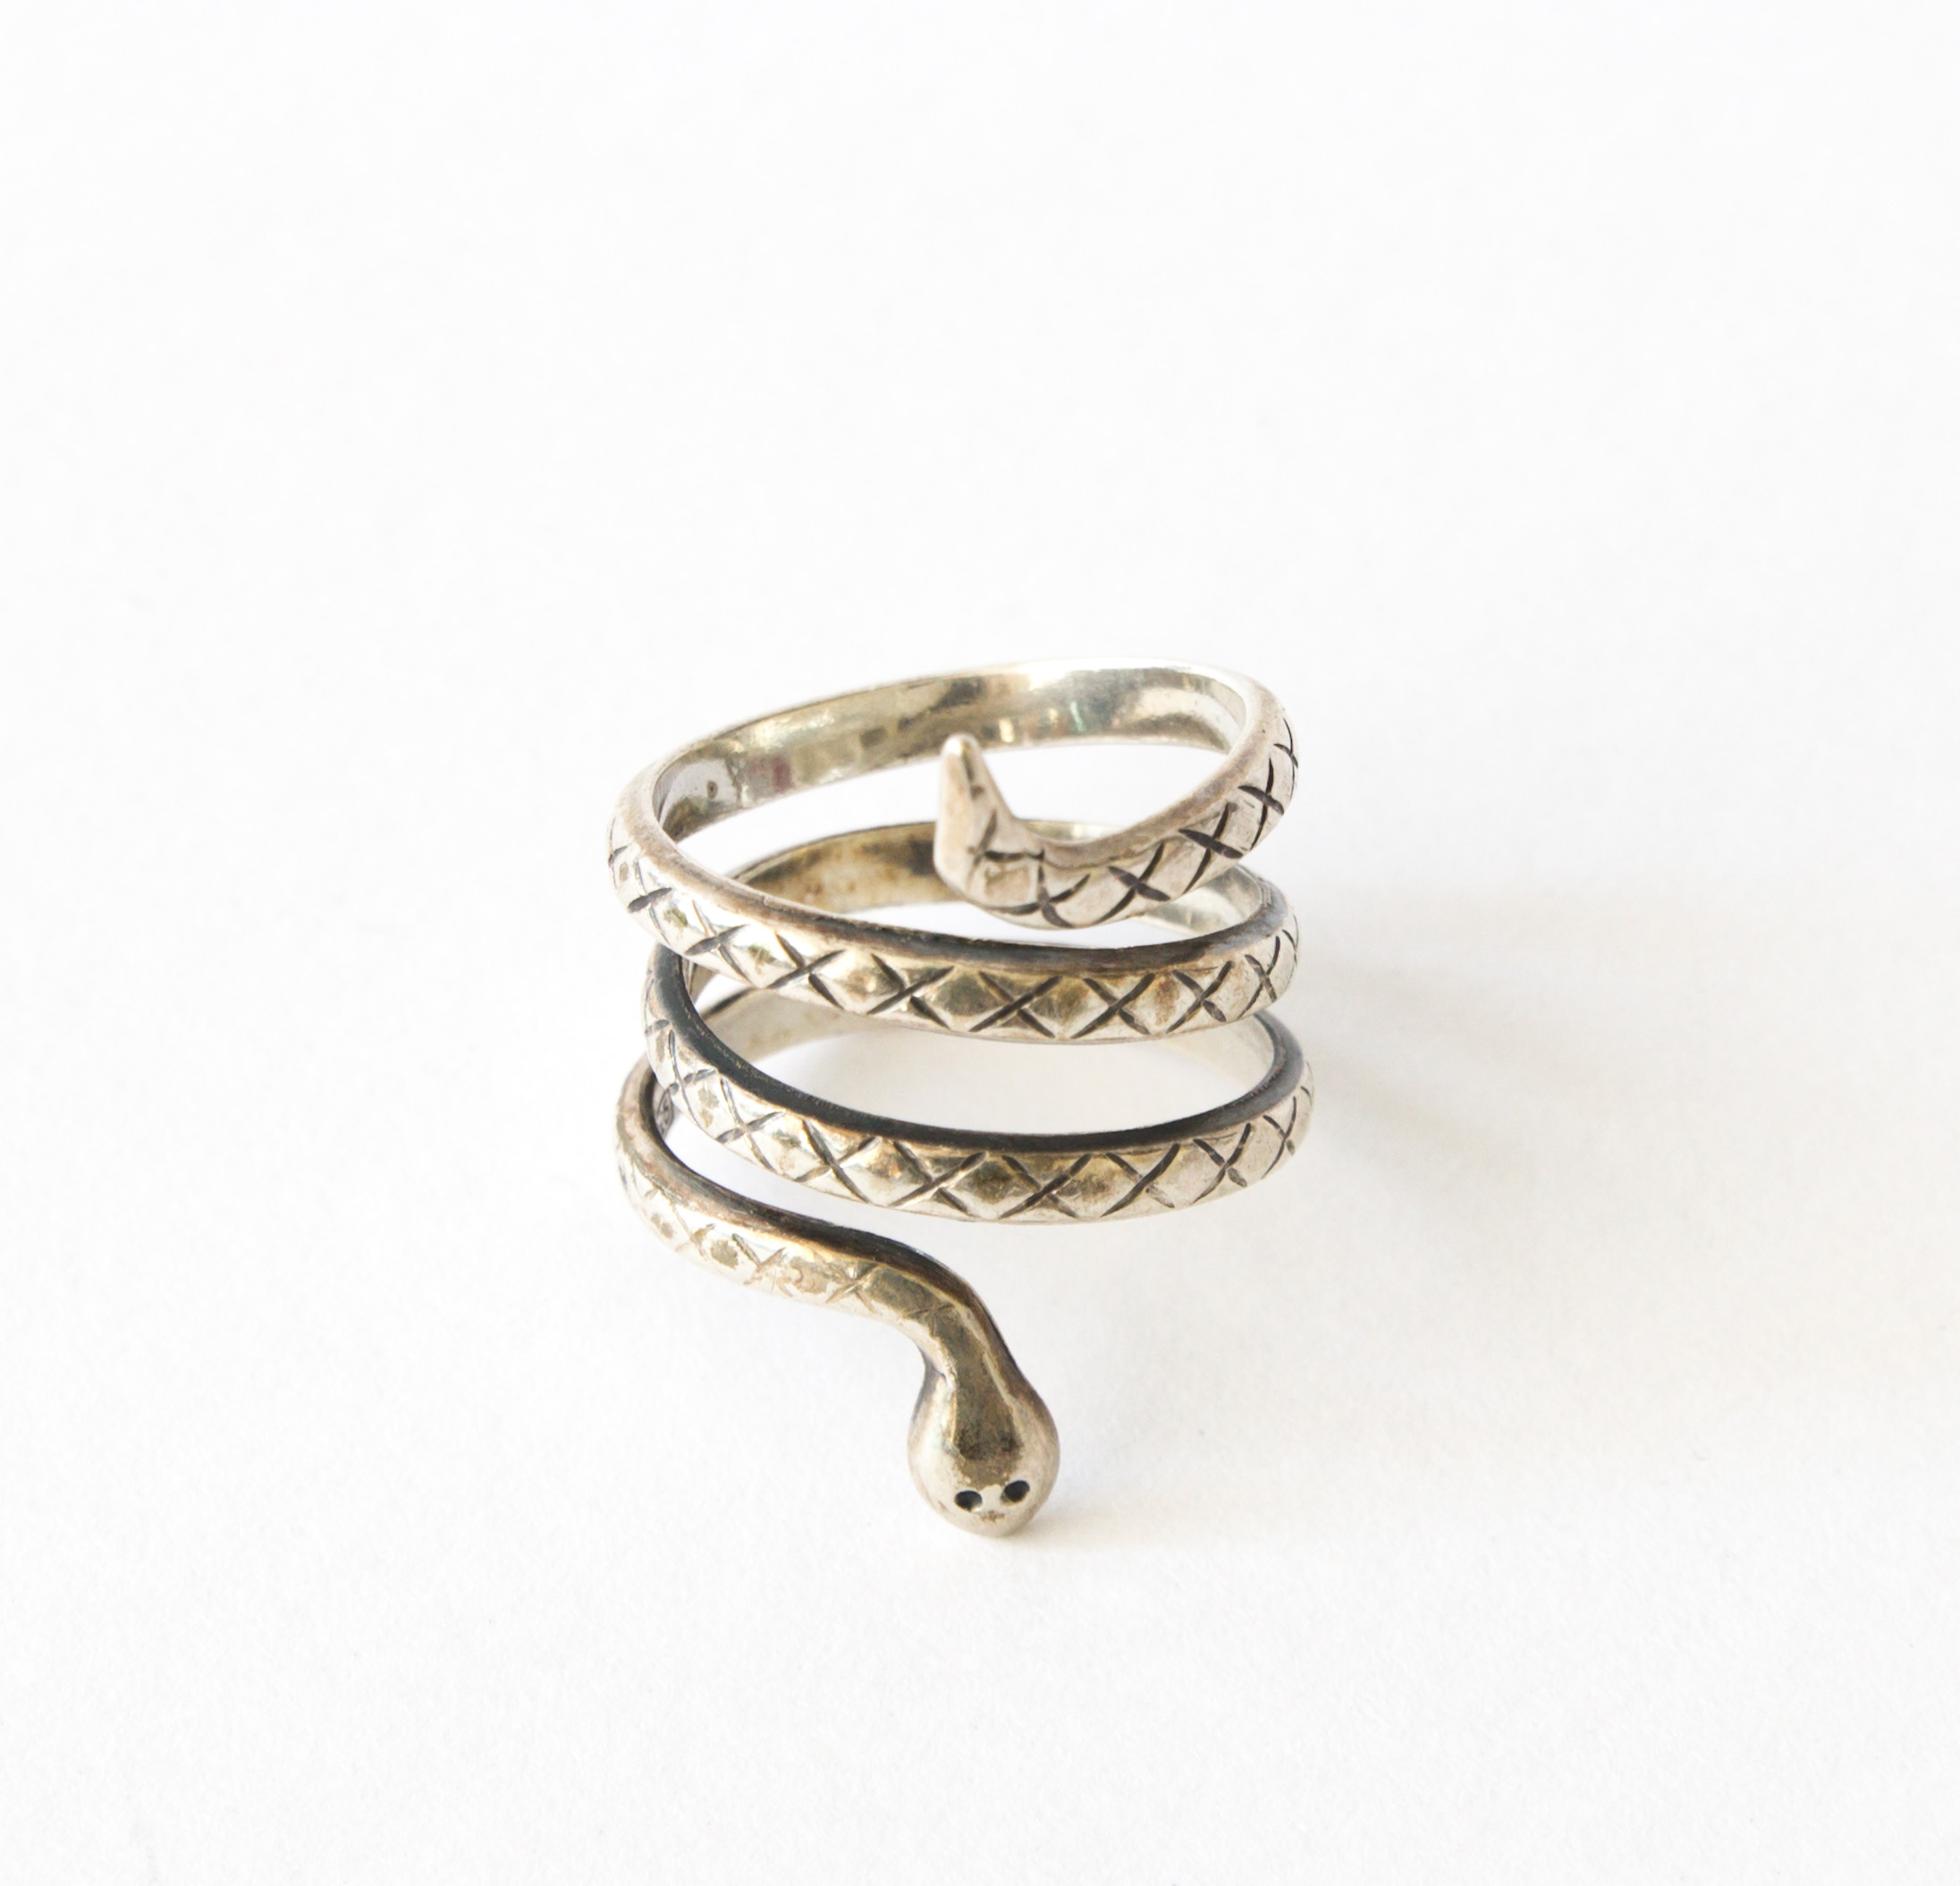 wedding motif gold snake rings jewelry style in field ring diamond local designer black patricia blackdiamond